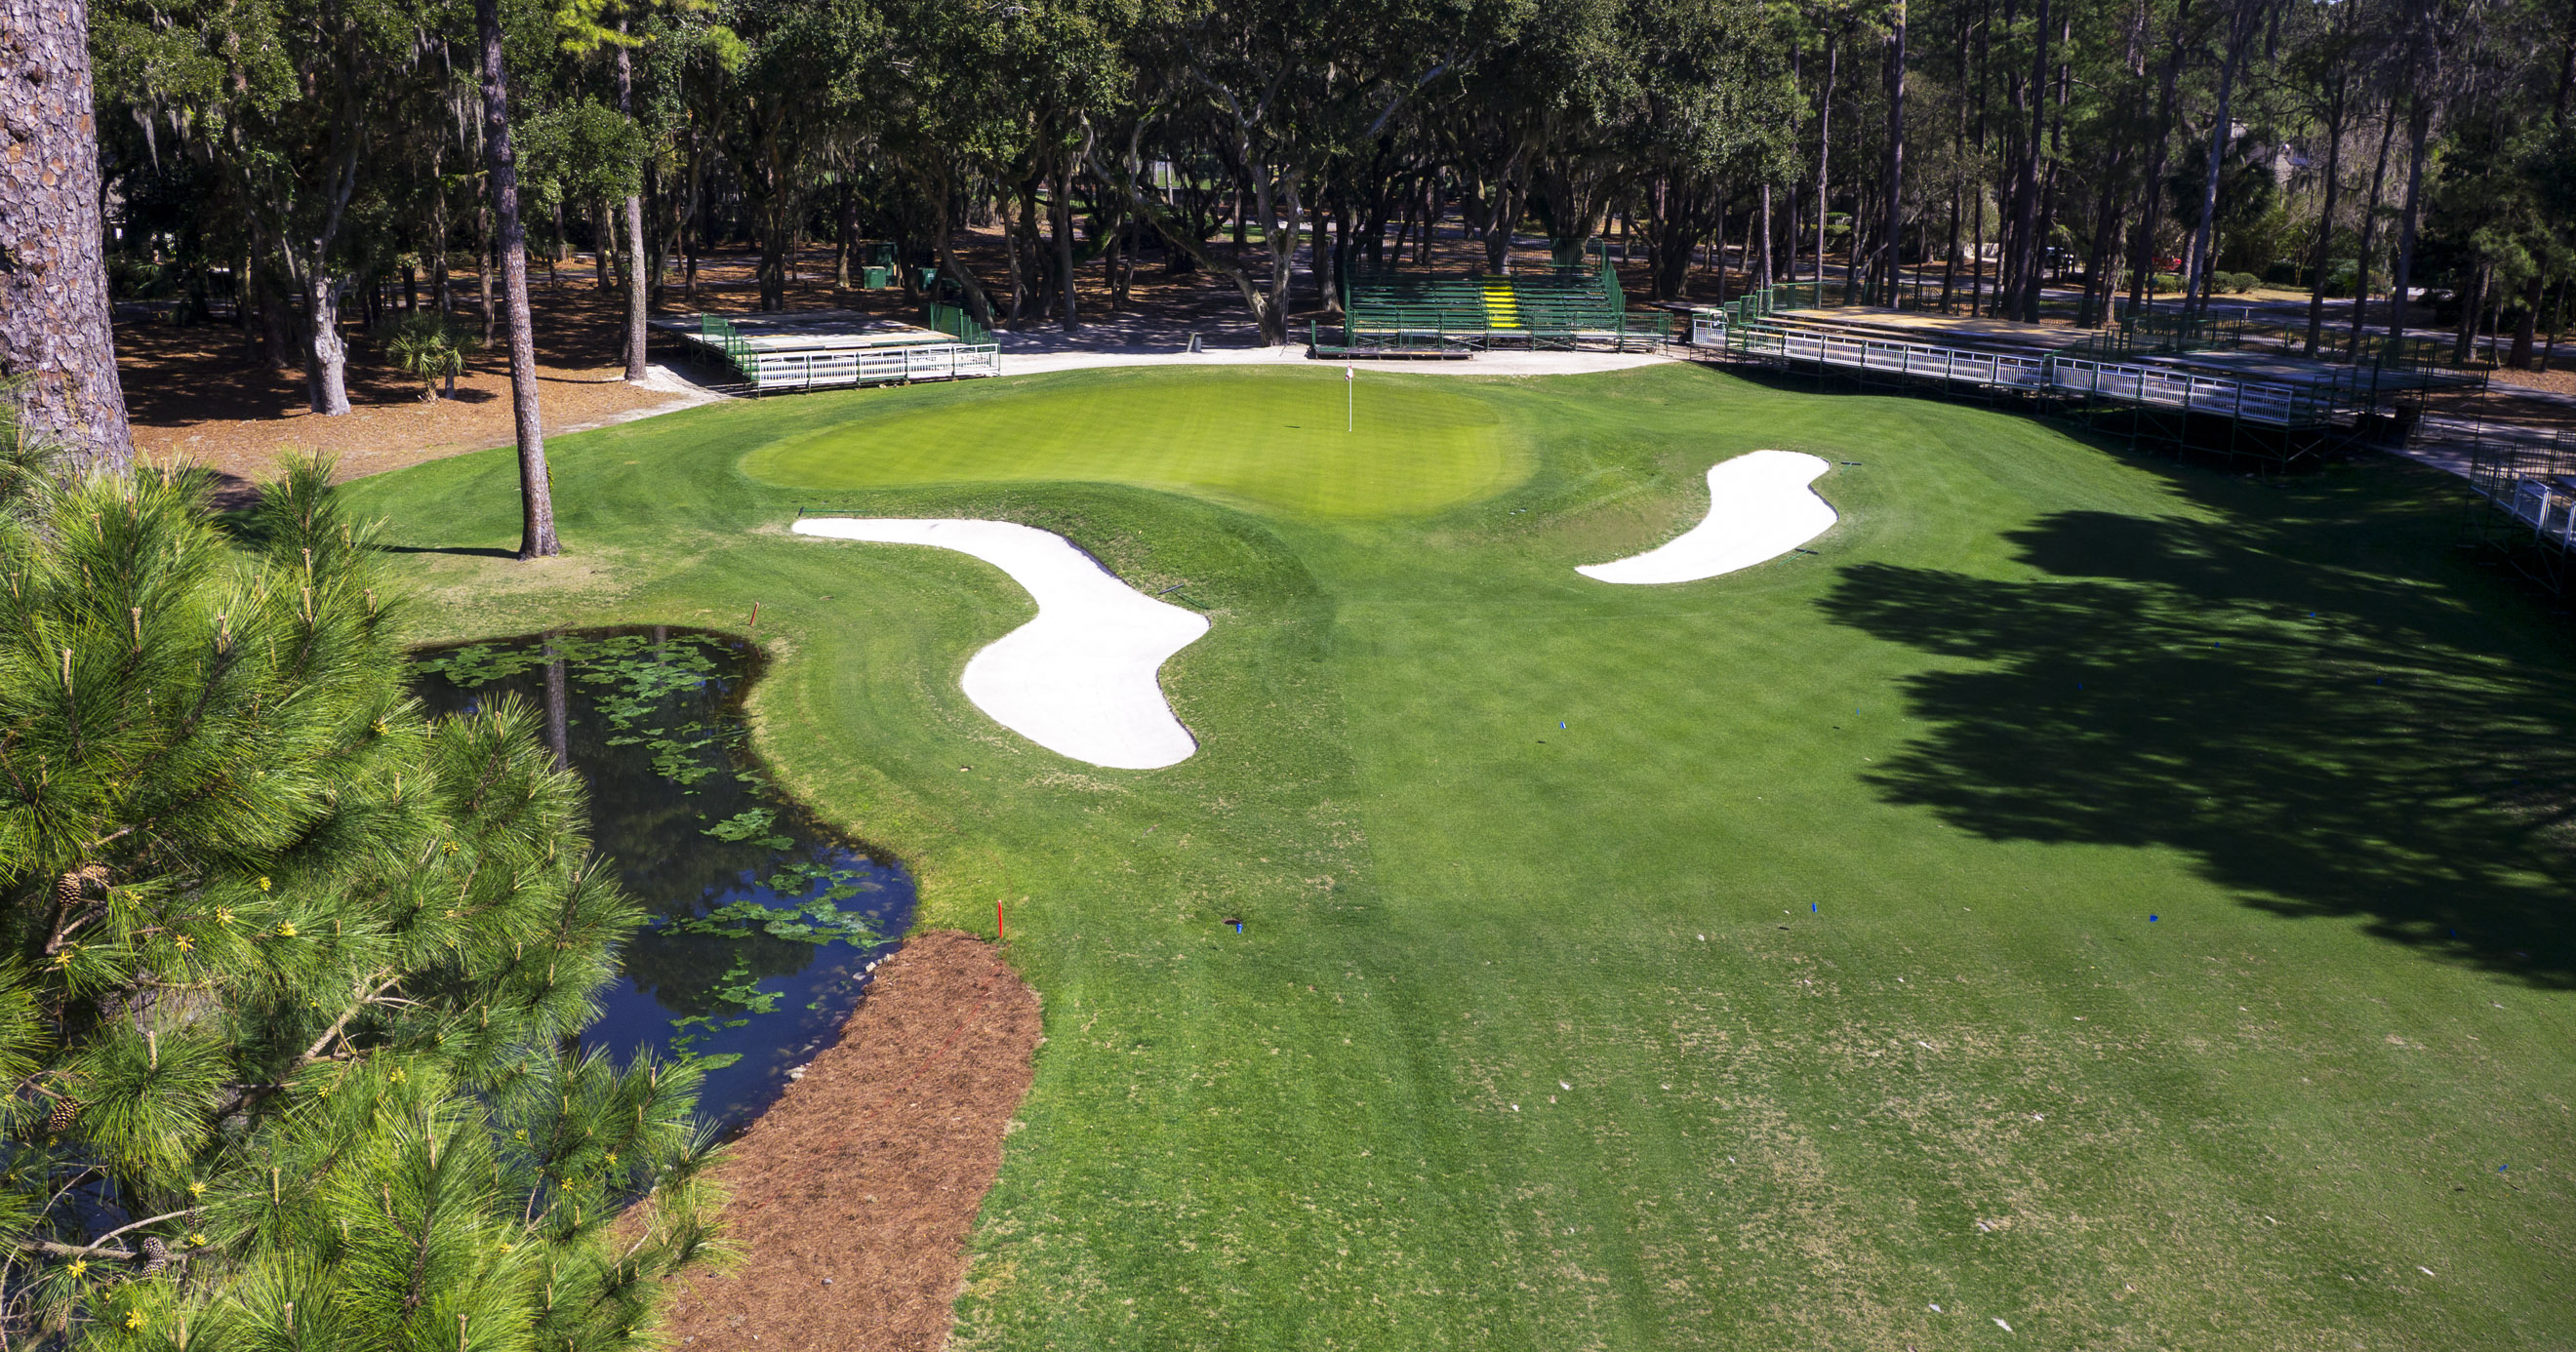 PGATOUR ficial Home of Golf and the FedExCup